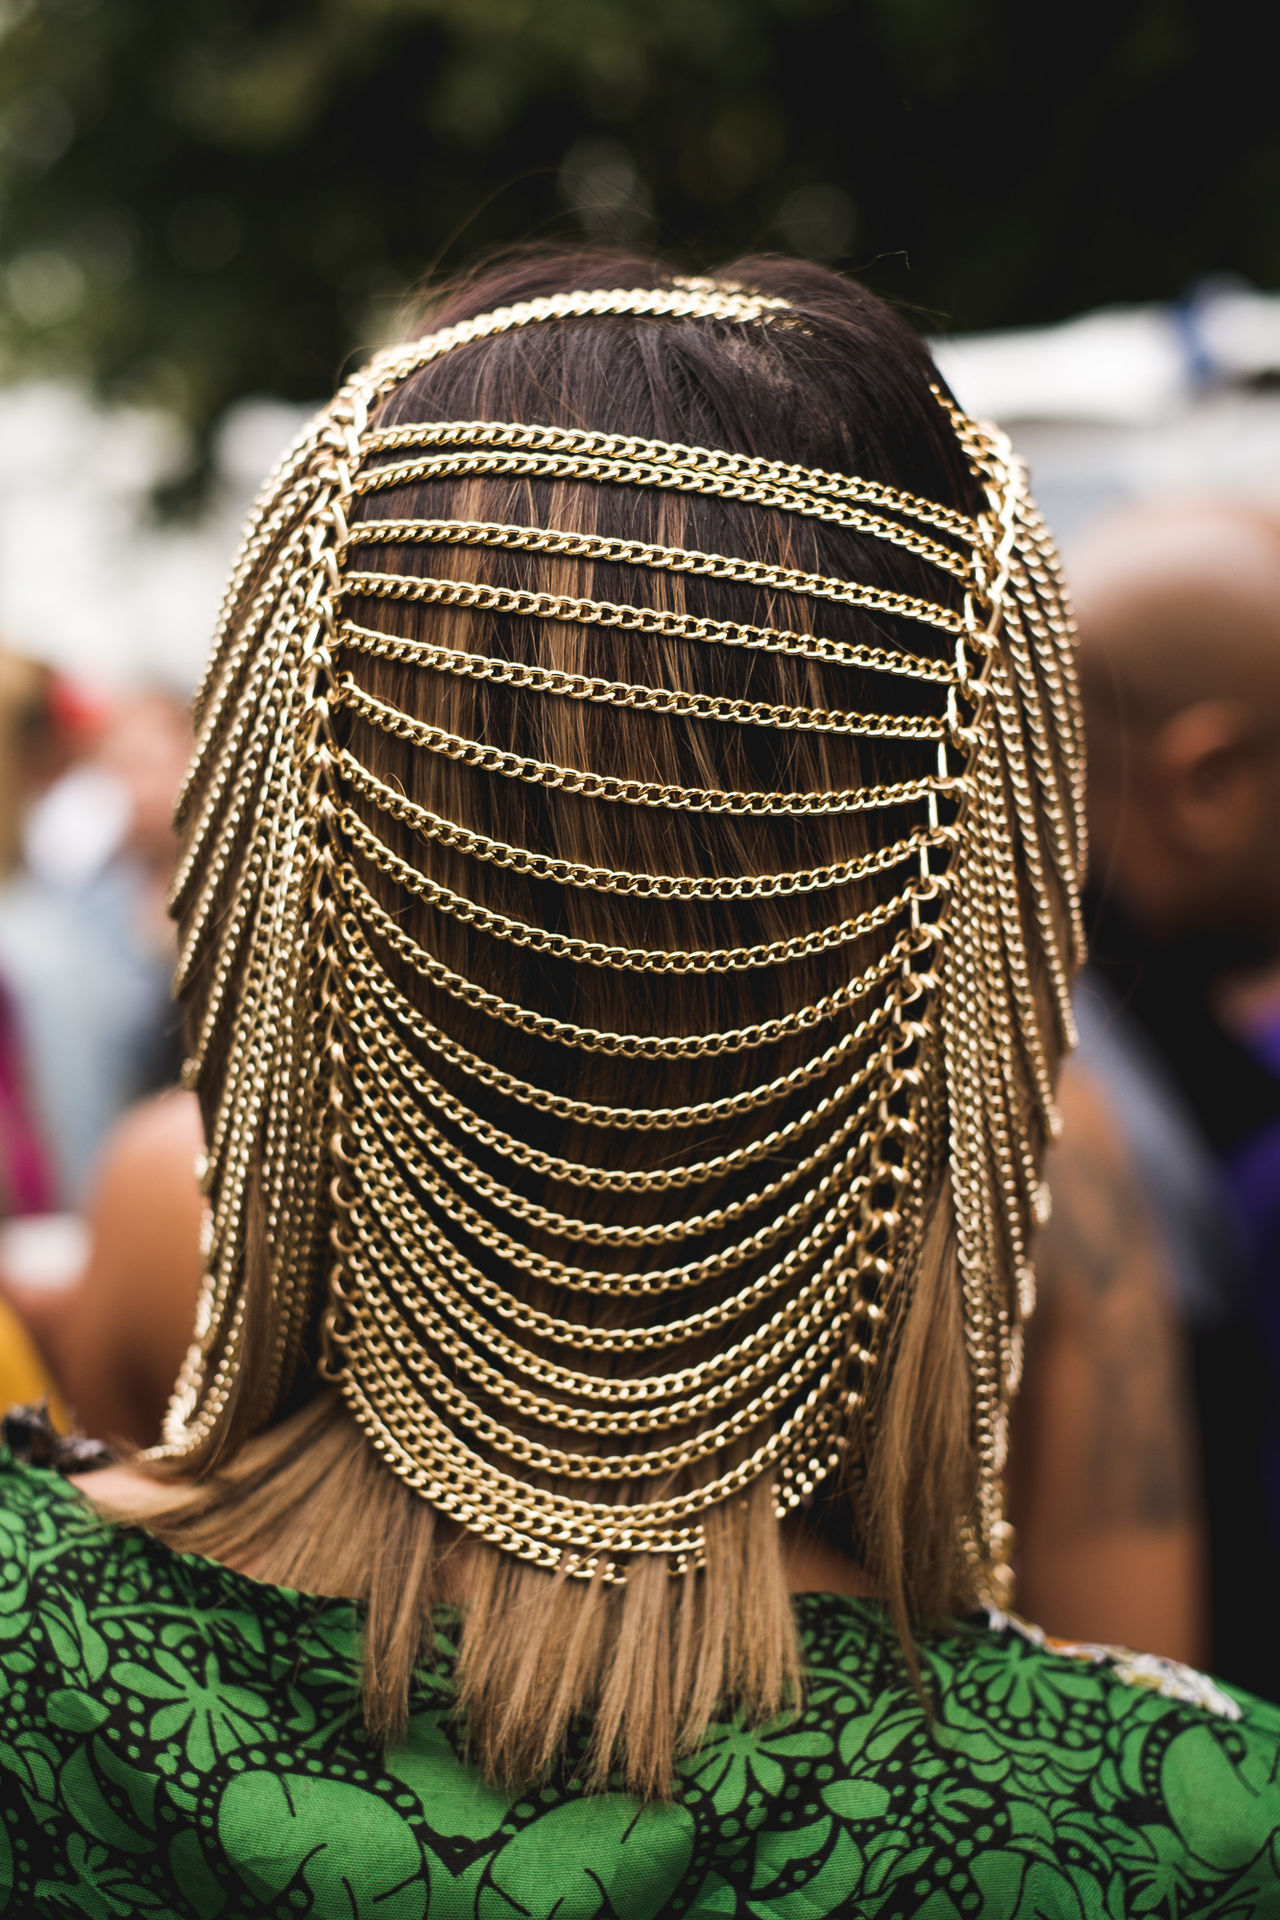 Rear view of woman wearing jewelry on head